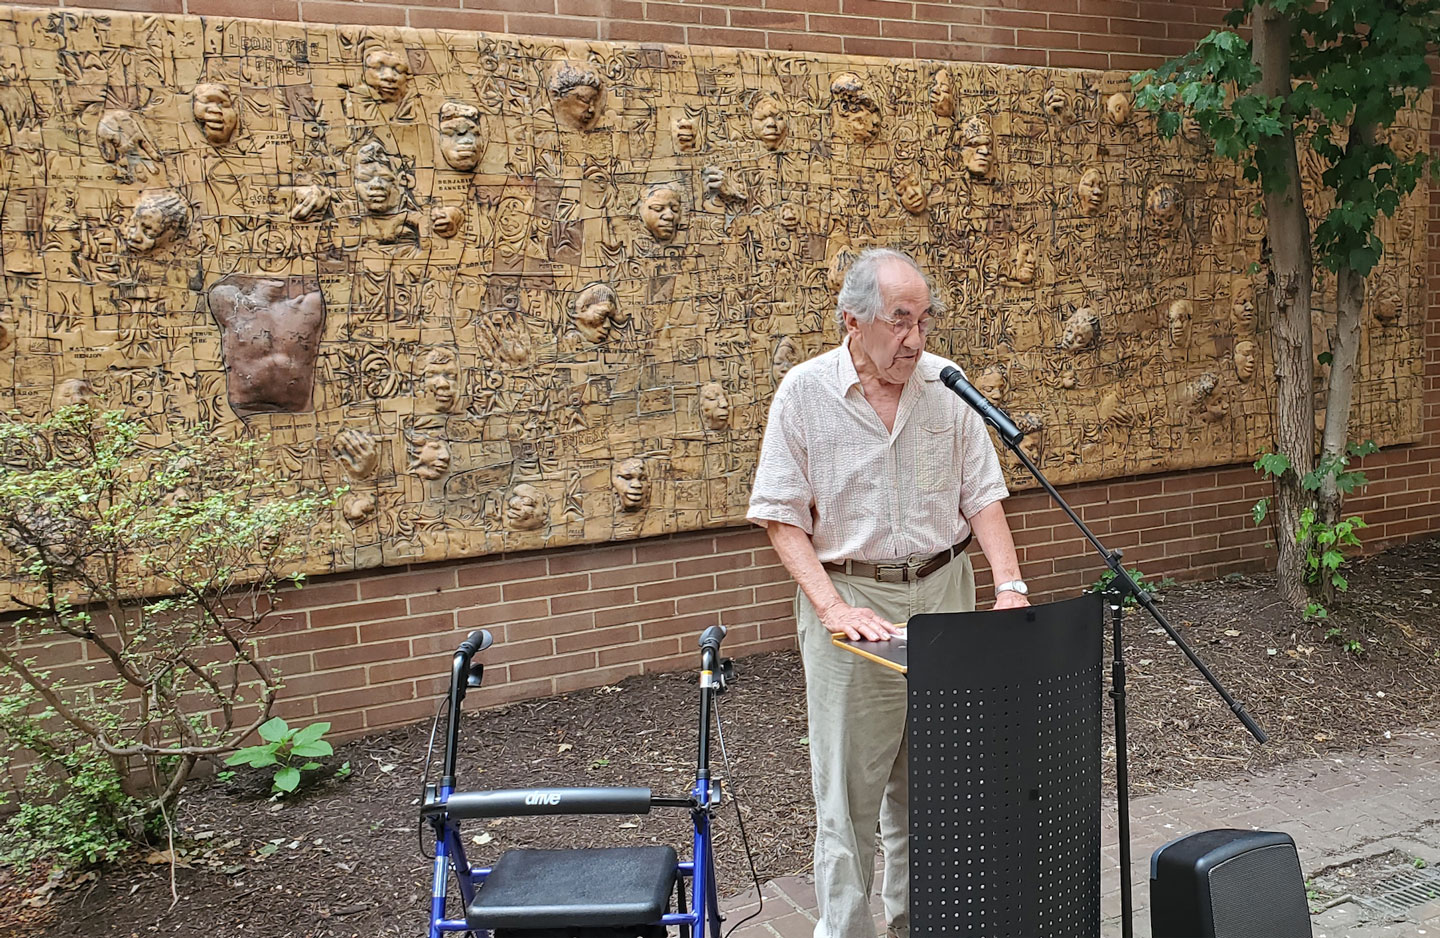 Photo of John Costanza speaking in front of his Black Lives Matter mural at the dedication in the Moore Galleries courtyard